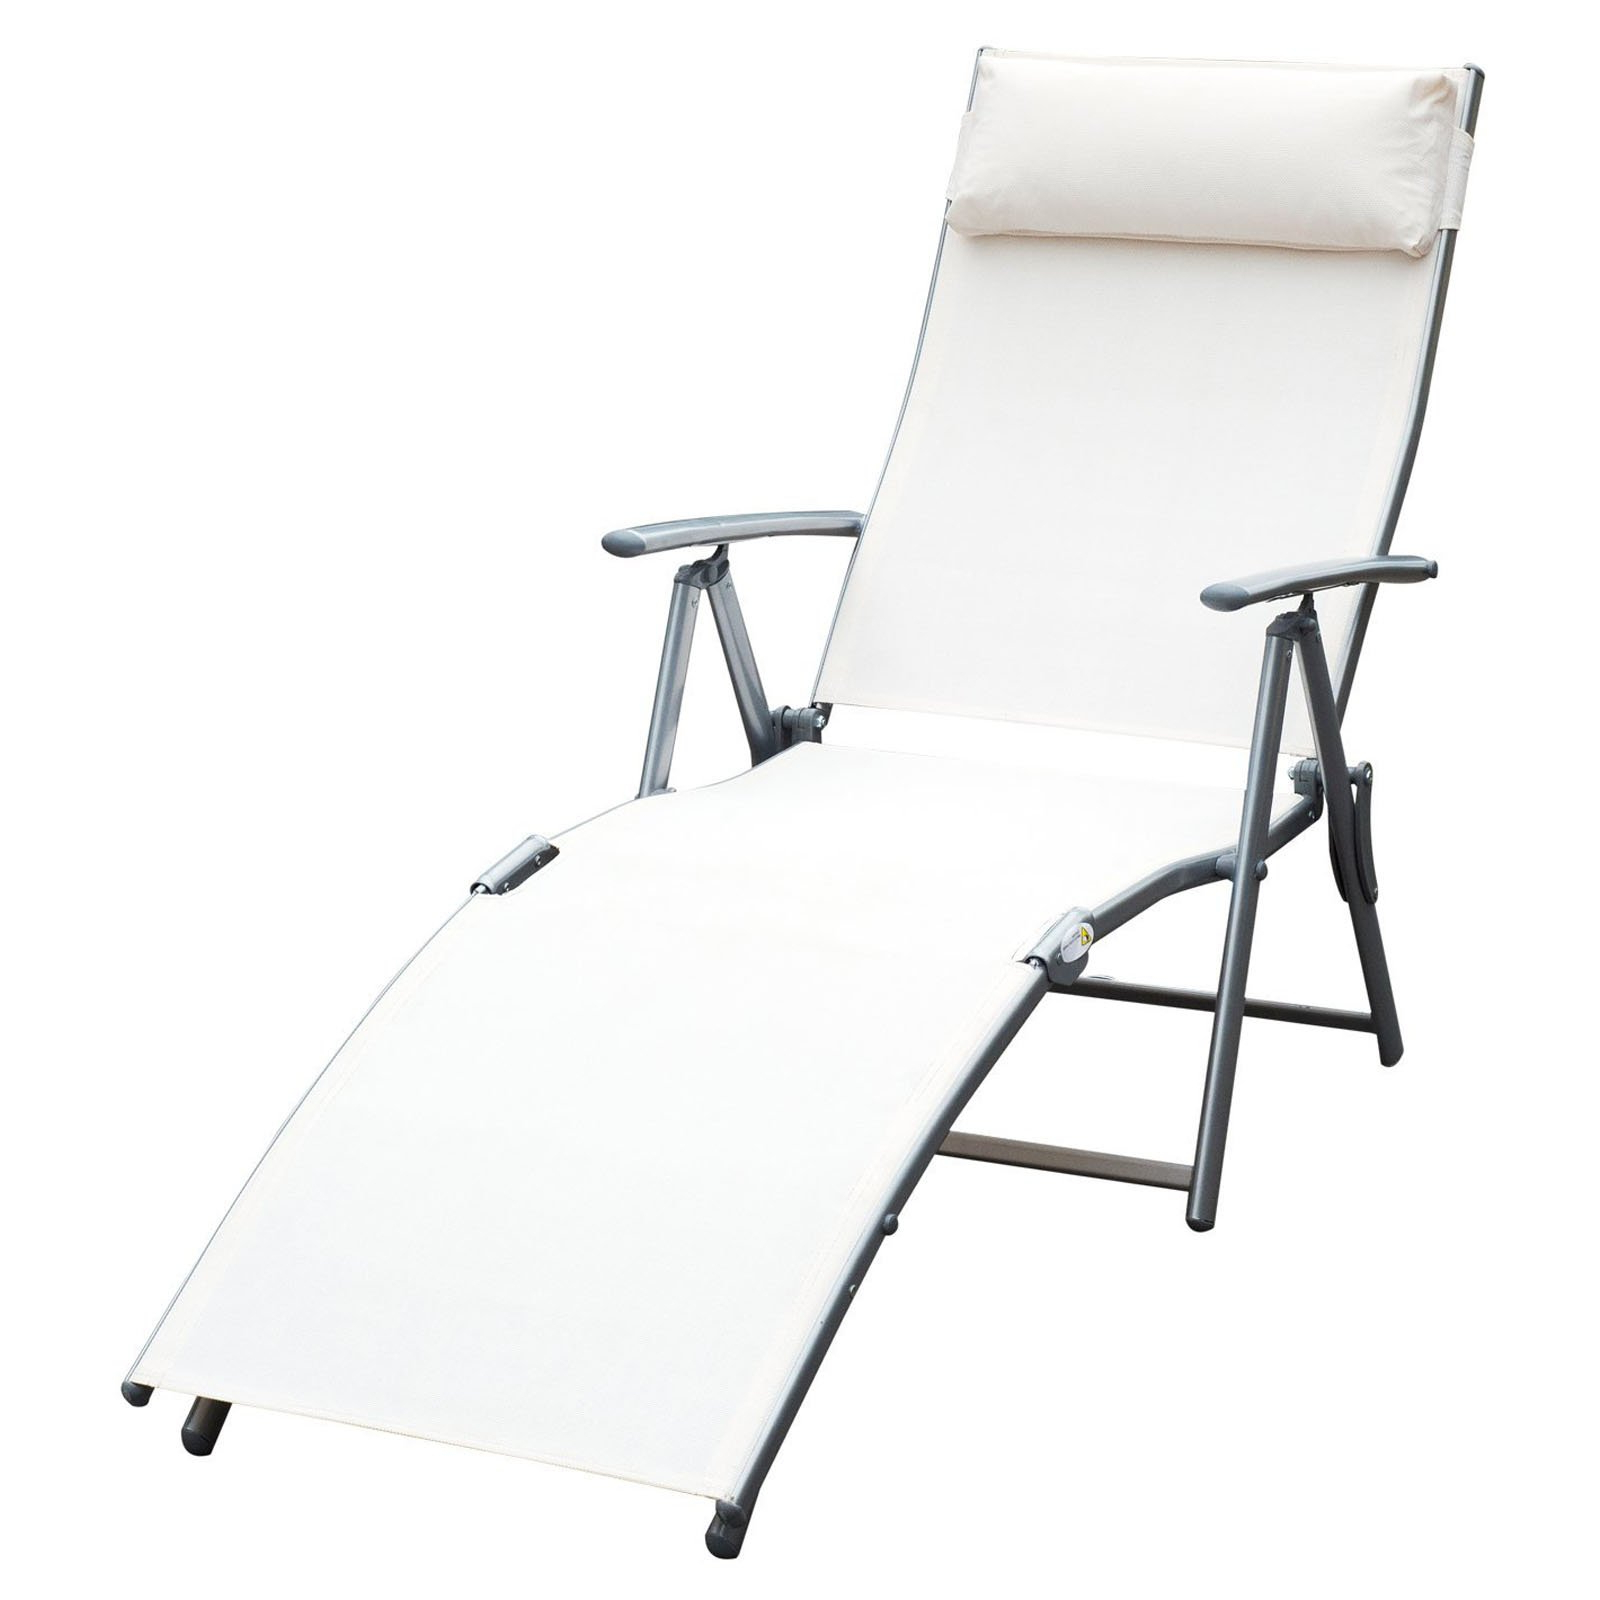 Steel Sling Fabric Outdoor Folding Chaise Lounges With Most Recently Released Outsunny Steel Sling Outdoor Folding Chaise Lounge Chair (View 18 of 25)